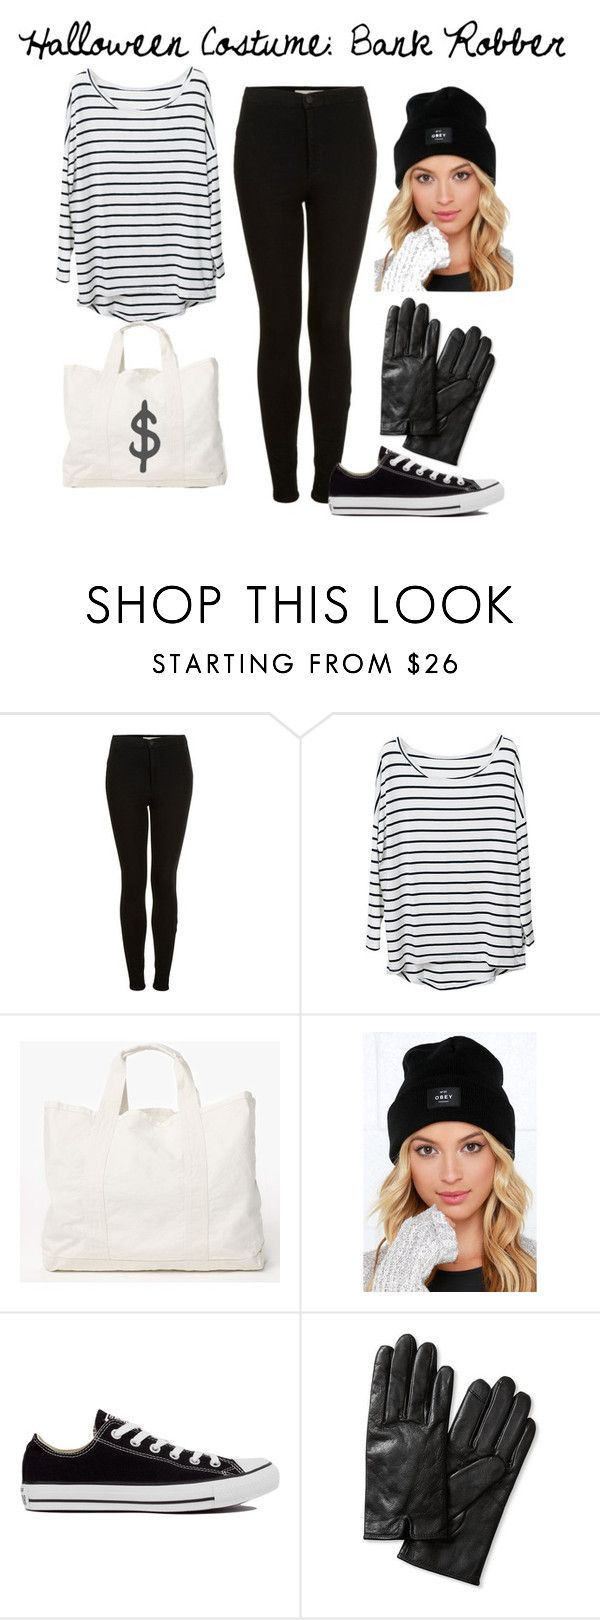 """Halloween Costume: Bank Robber"" by caro3302 ❤ liked on Polyvore featuring Topshop, James Perse, OBEY Clothing, Converse and Banana Republic"